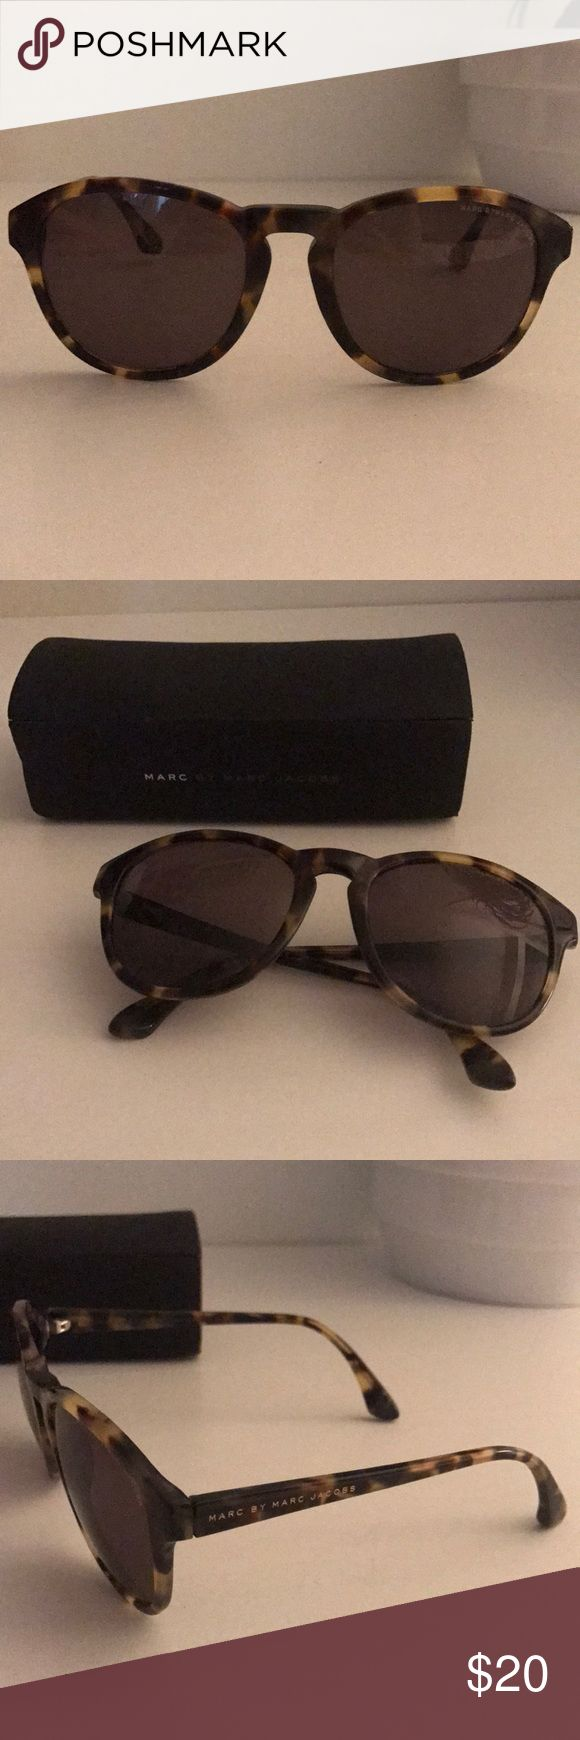 Marc by Marc Jacobs Tortoise Sunglasses Marc by Marc Jacobs Tortoise Sunglasses. They got a bit oversized and the case is a little worn... used to be my fav pair, I just wear smaller glasses than I used to! Marc By Marc Jacobs Accessories Sunglasses